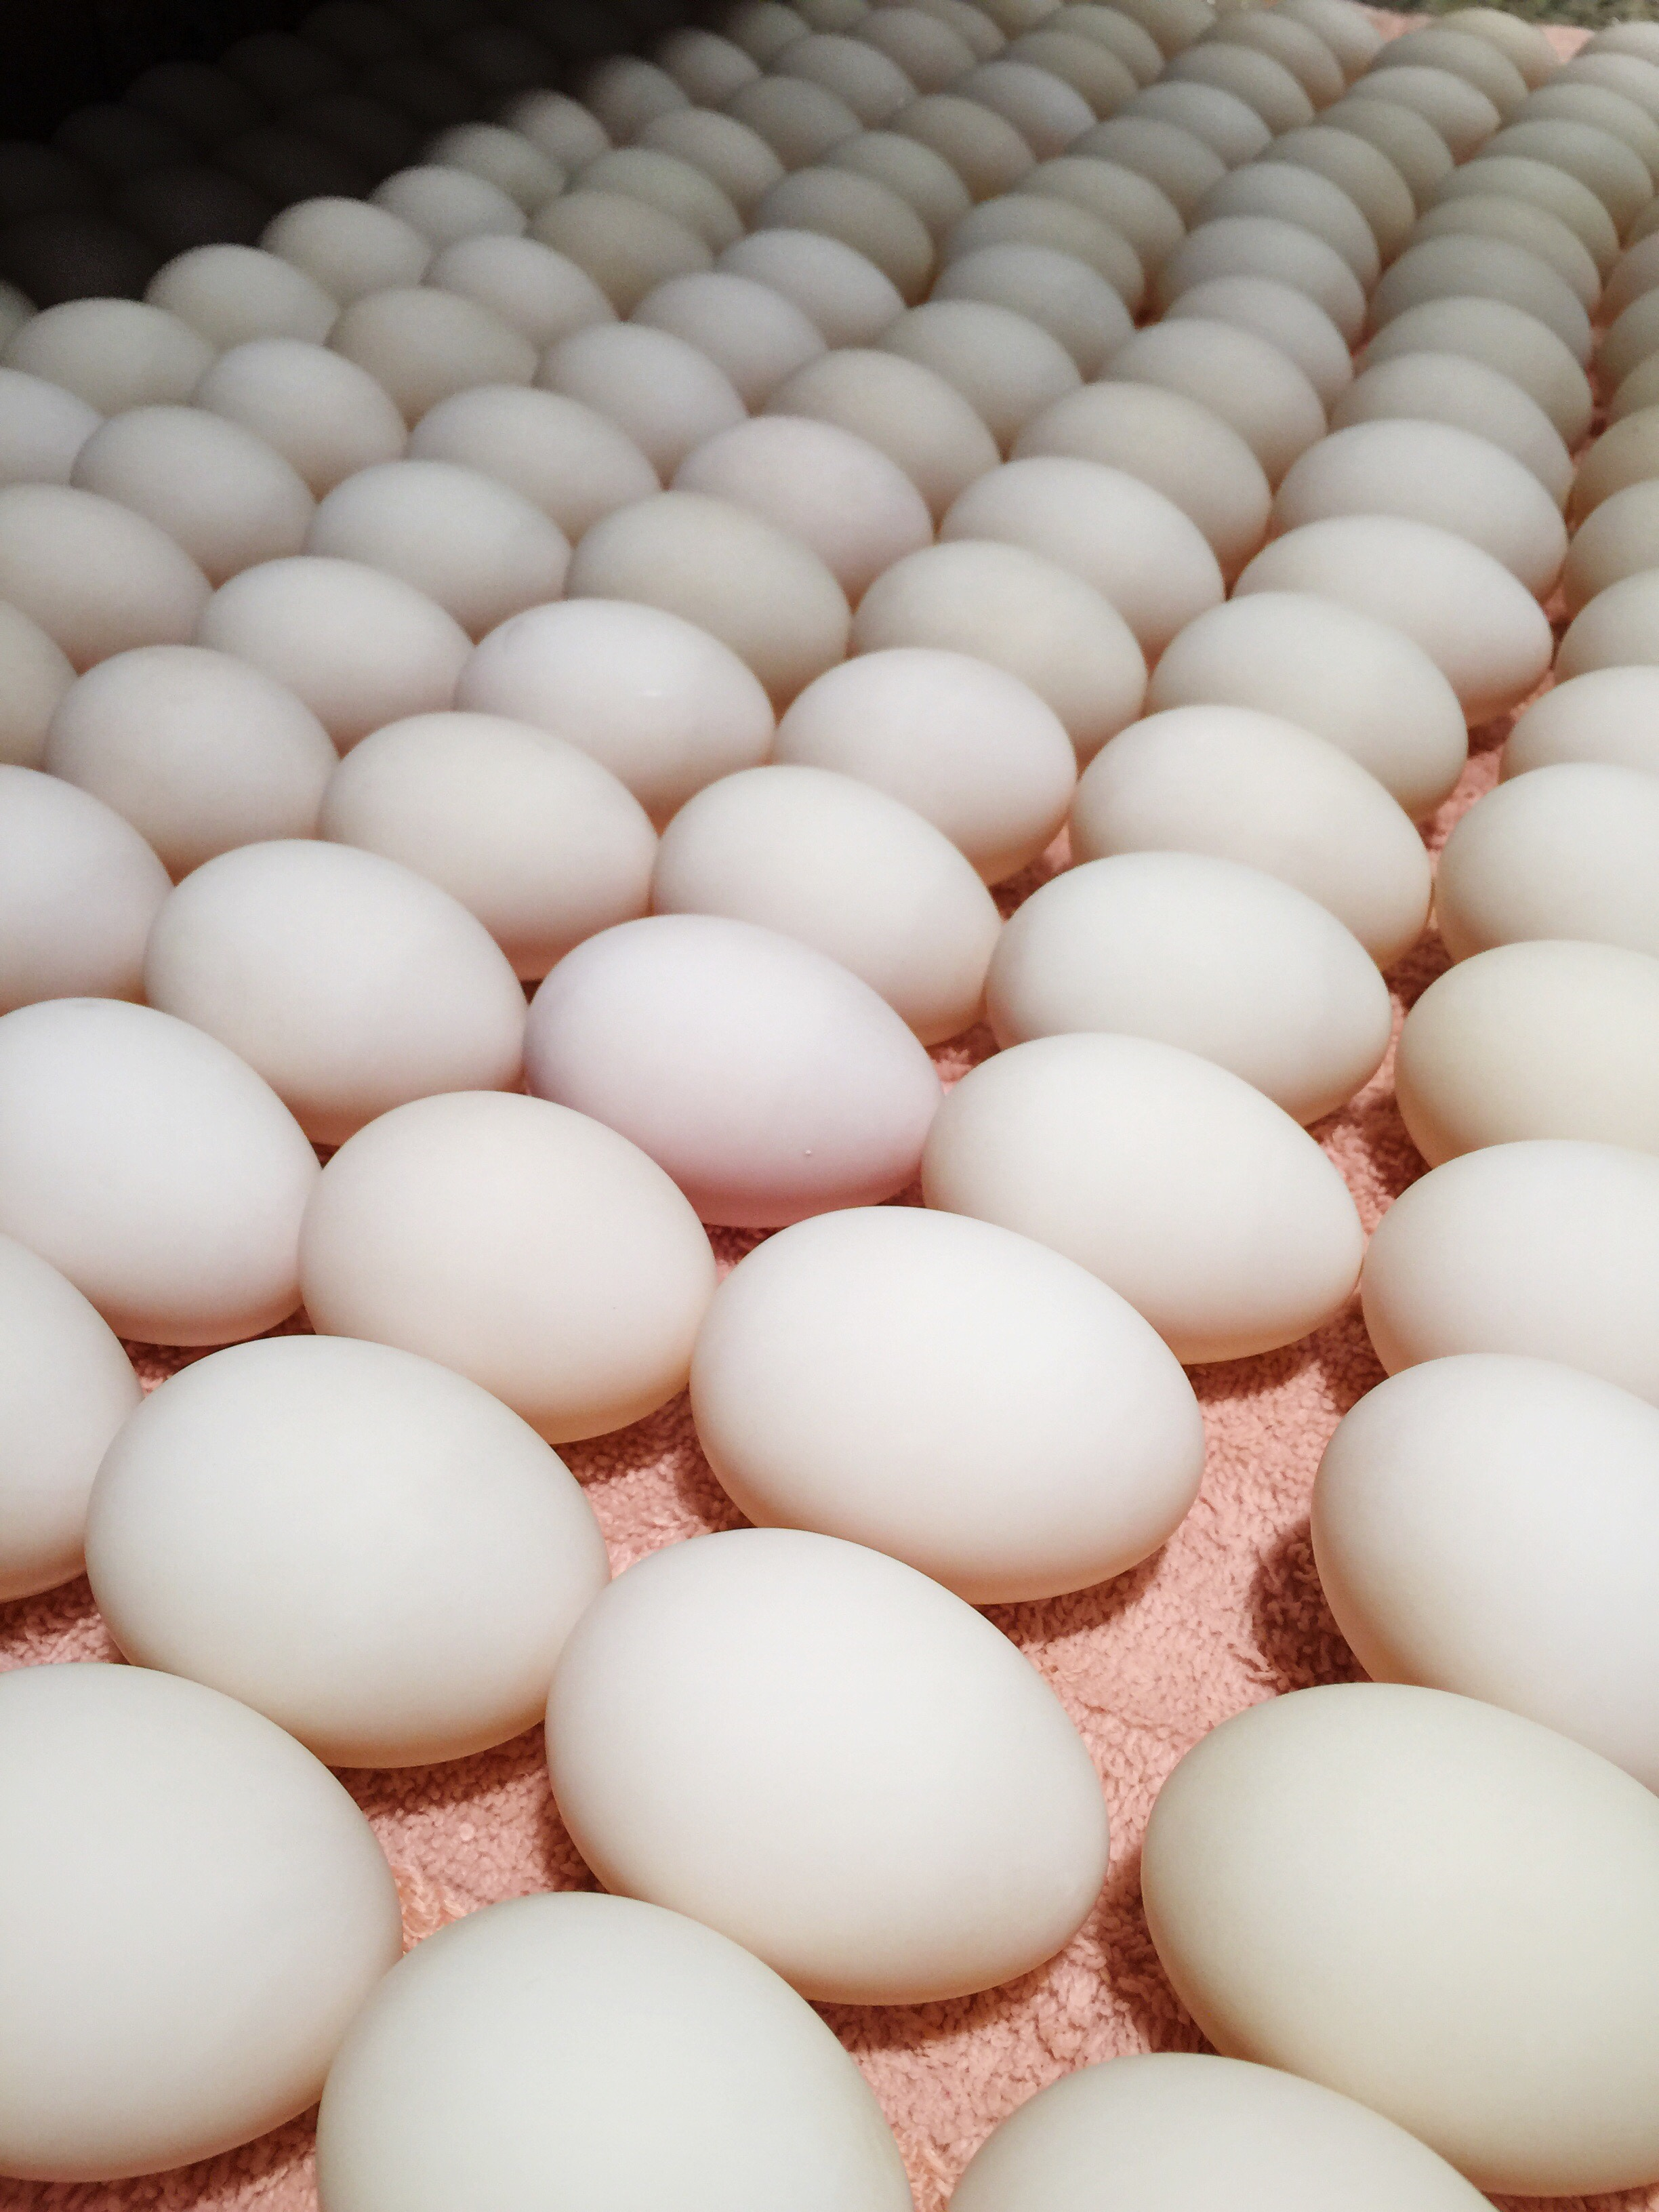 Pictures of duck eggs